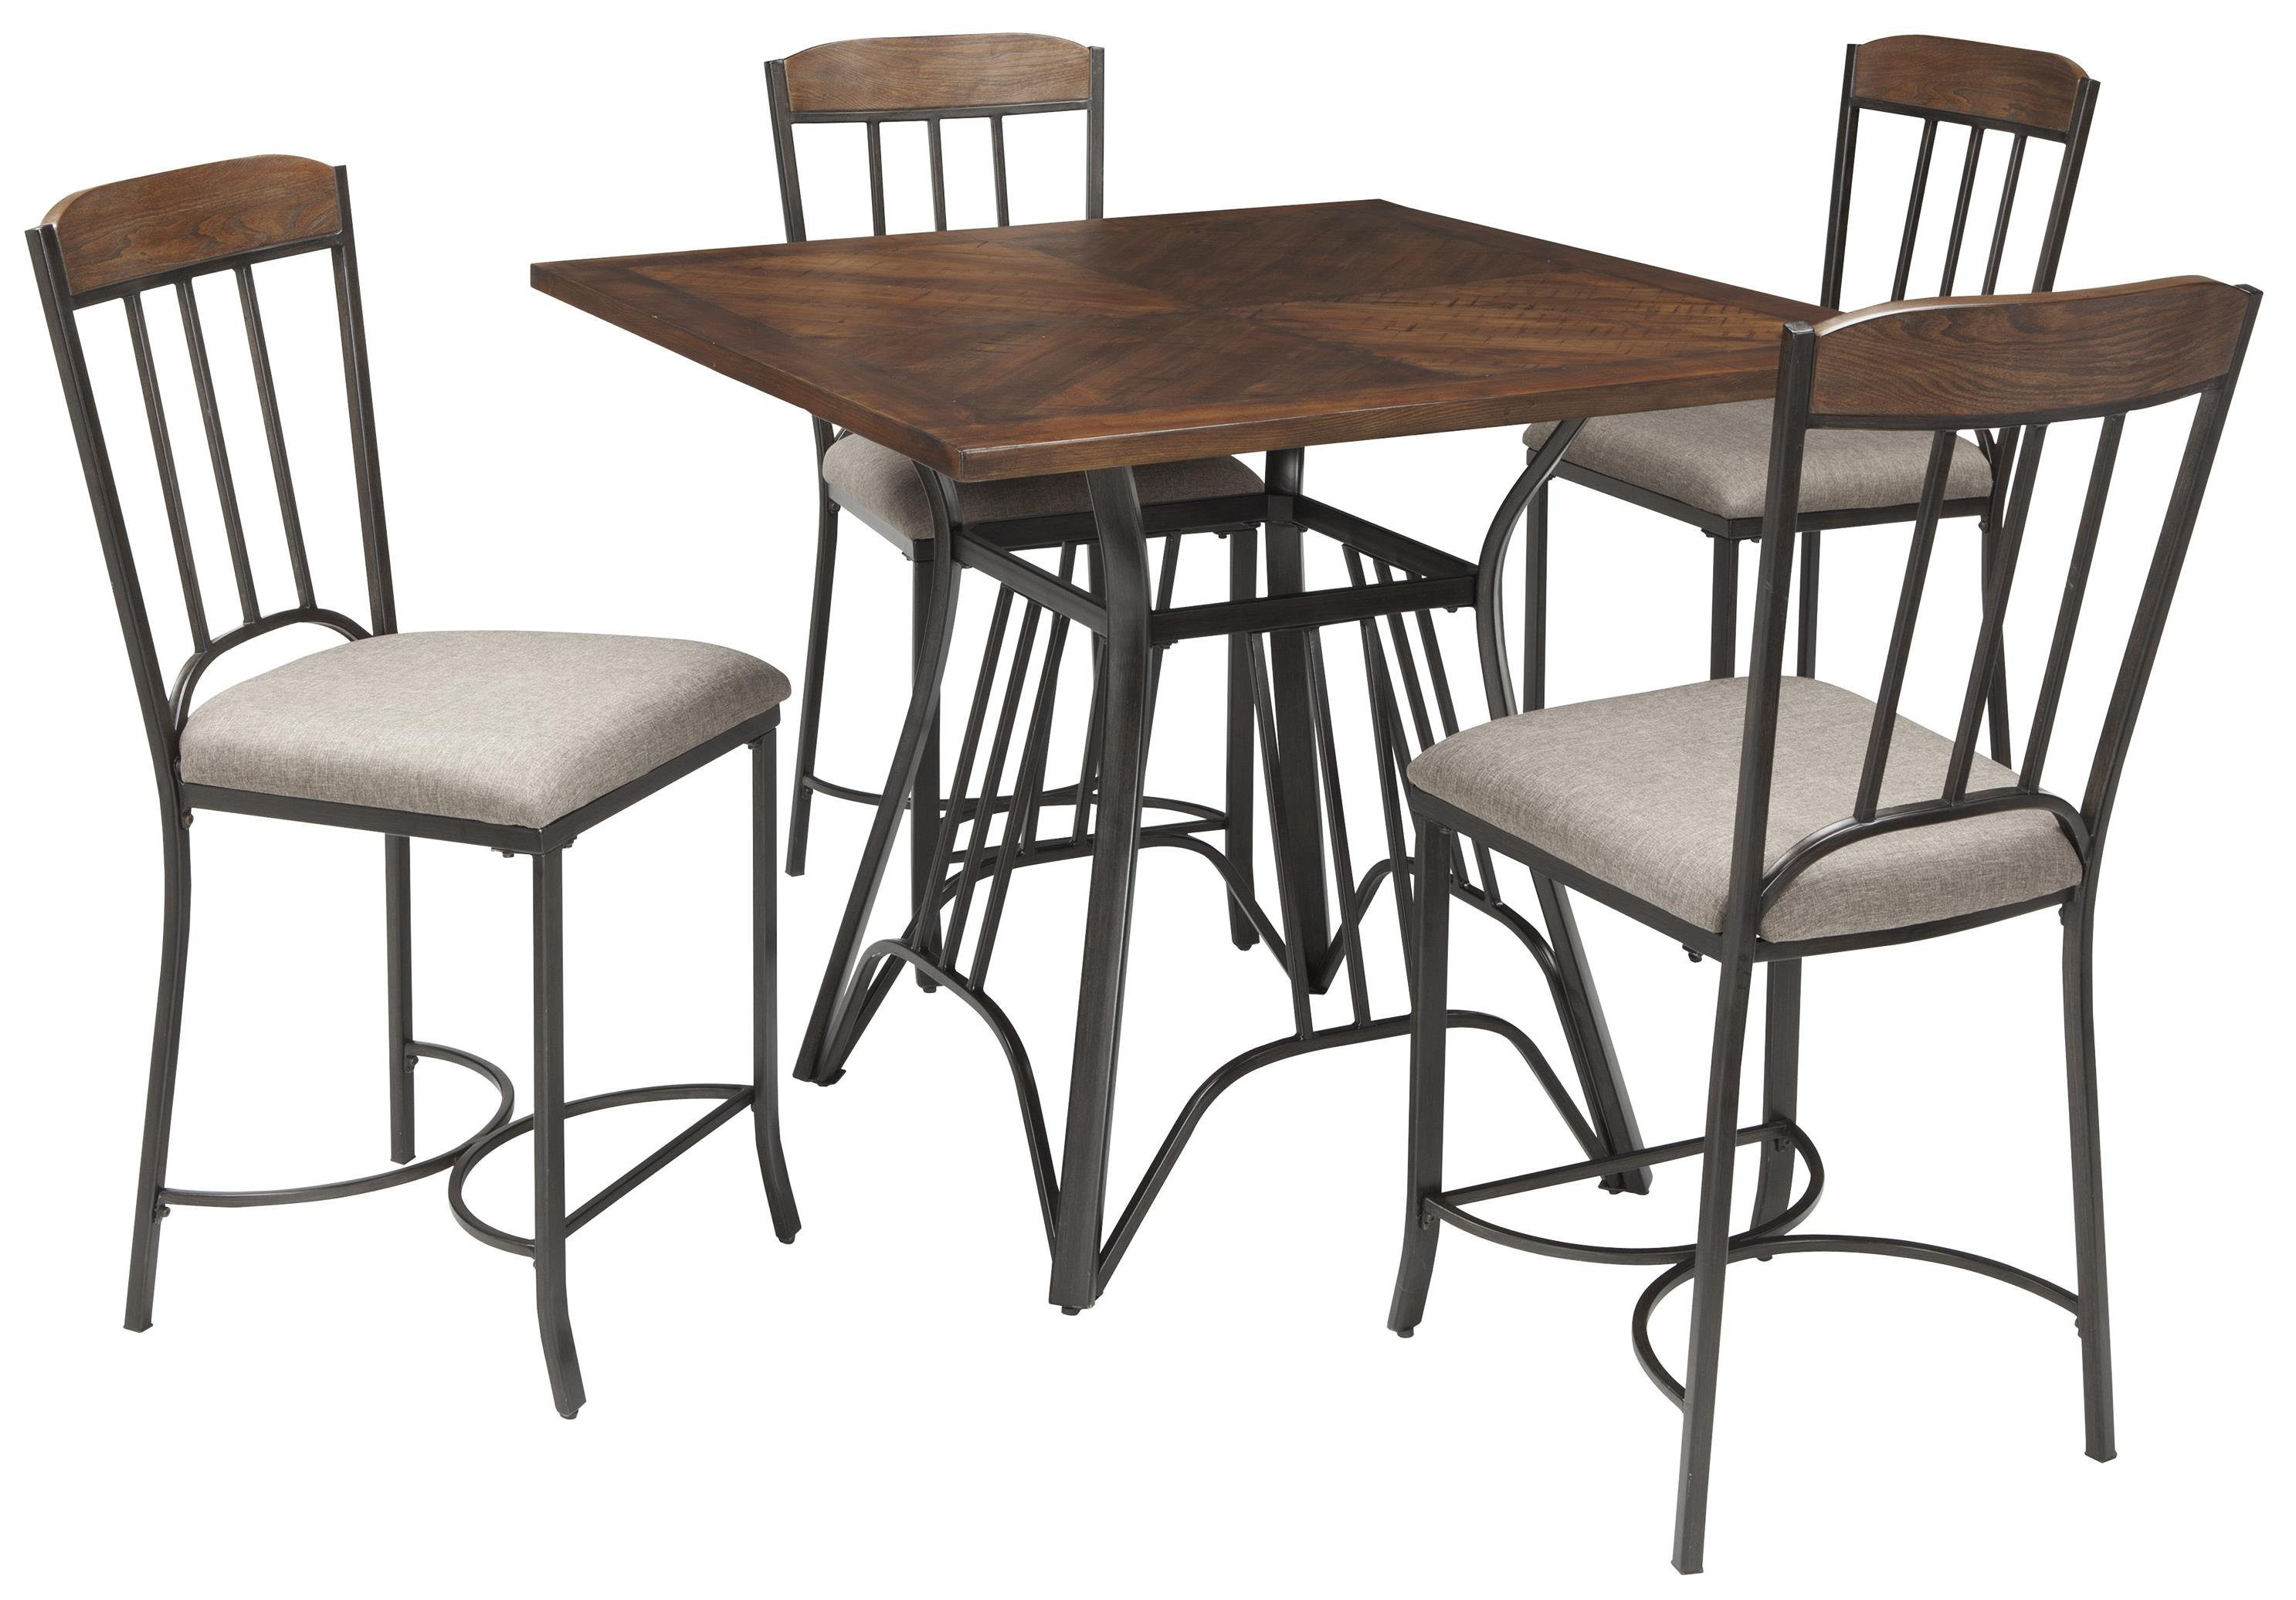 signature design by ashley zanilly square dining room counter table set item number d507